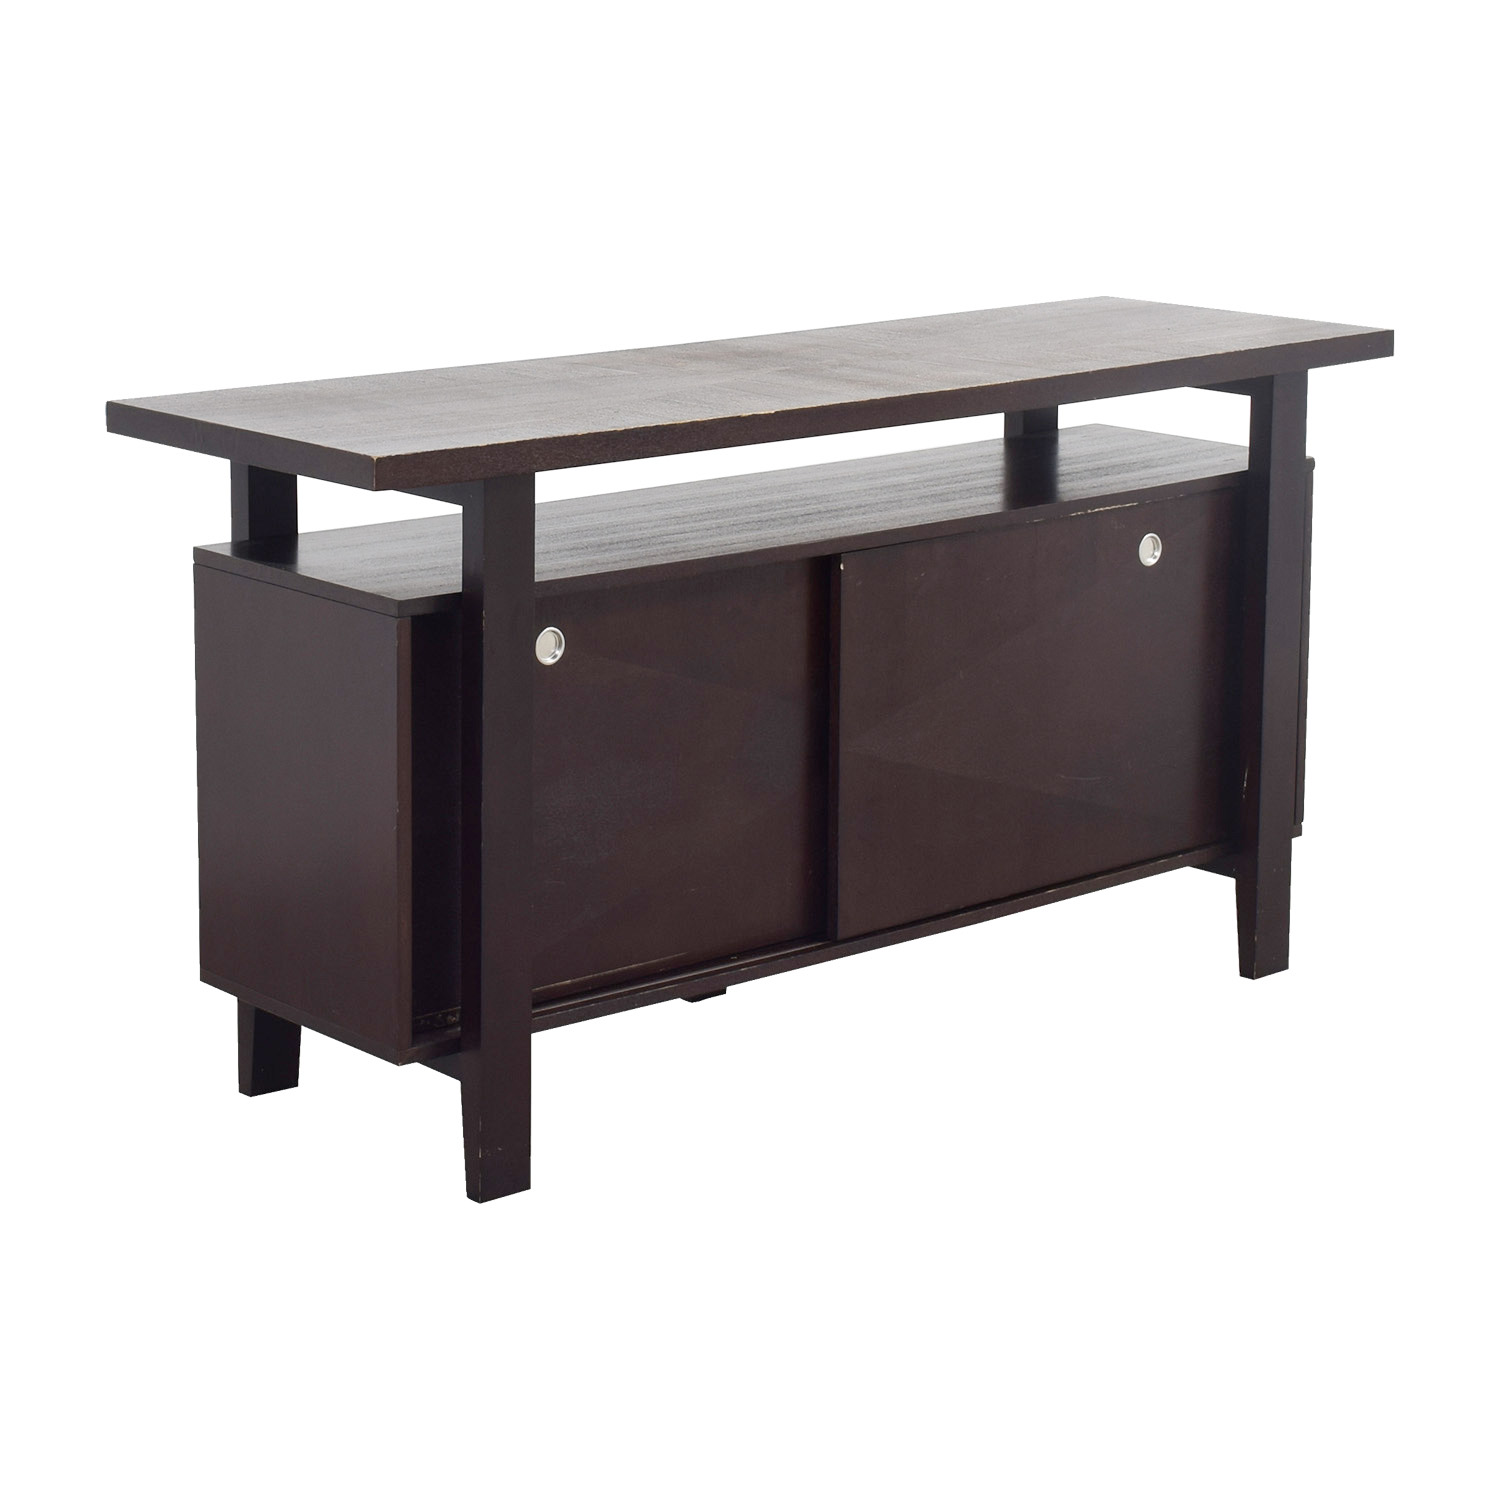 Brown Server with Interior Shelves dimensions